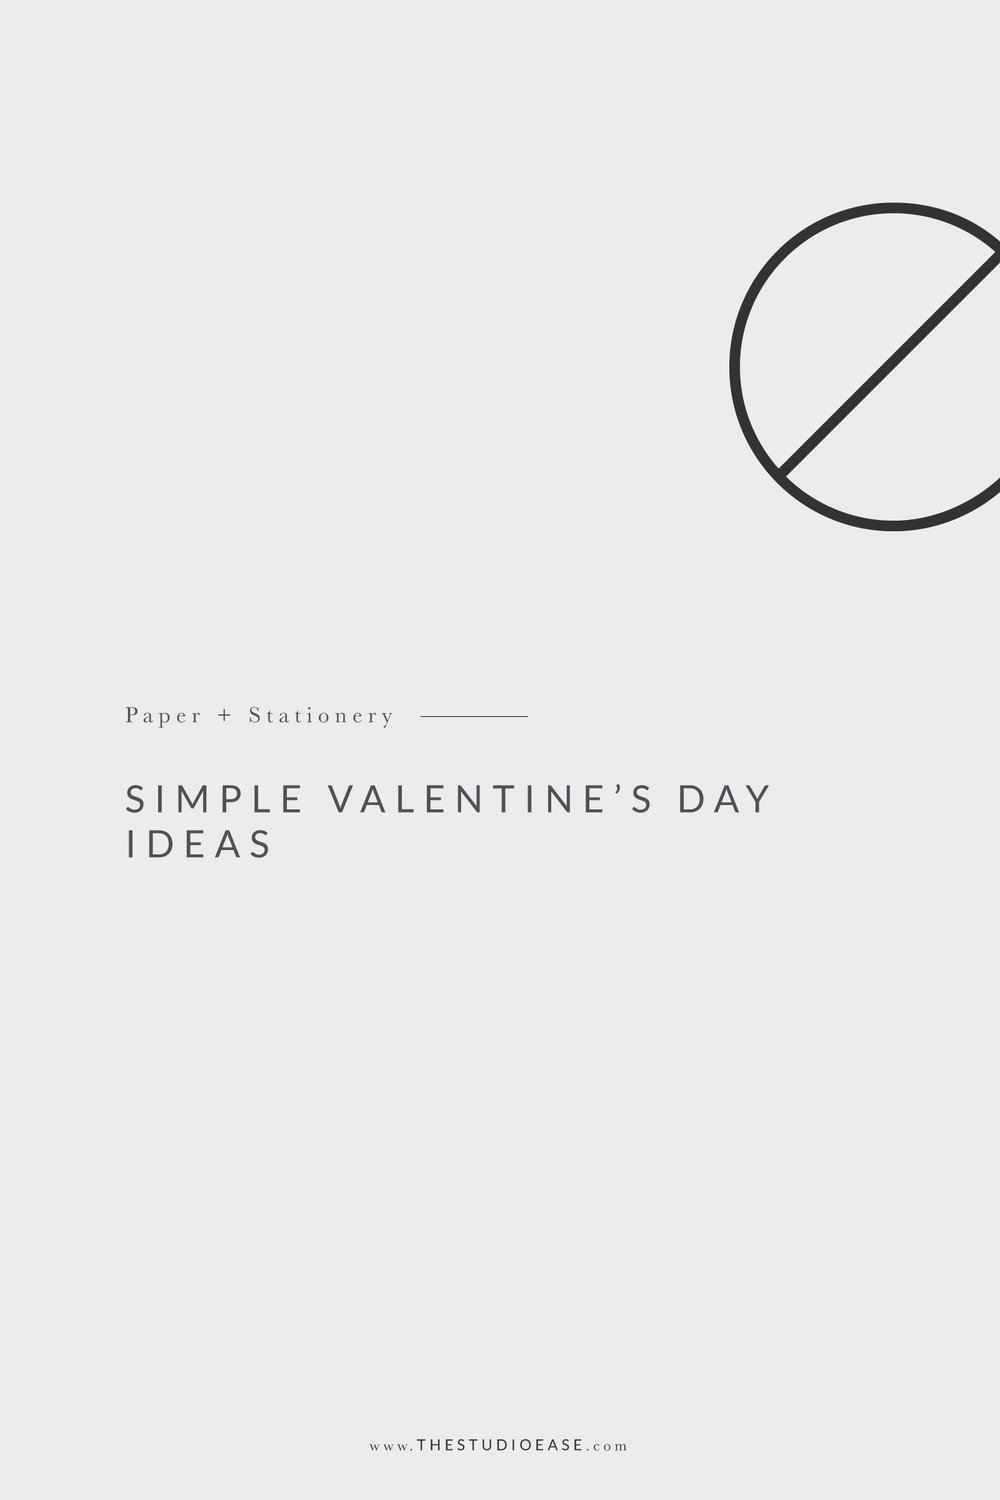 Simple Valentine's Day Ideas by Studio Ease #valentinesday #valentinesdayideas valentine's day gifts for him, valentine's day gifts for her, affordable valentine's day gifts, easy valentine's day gifts